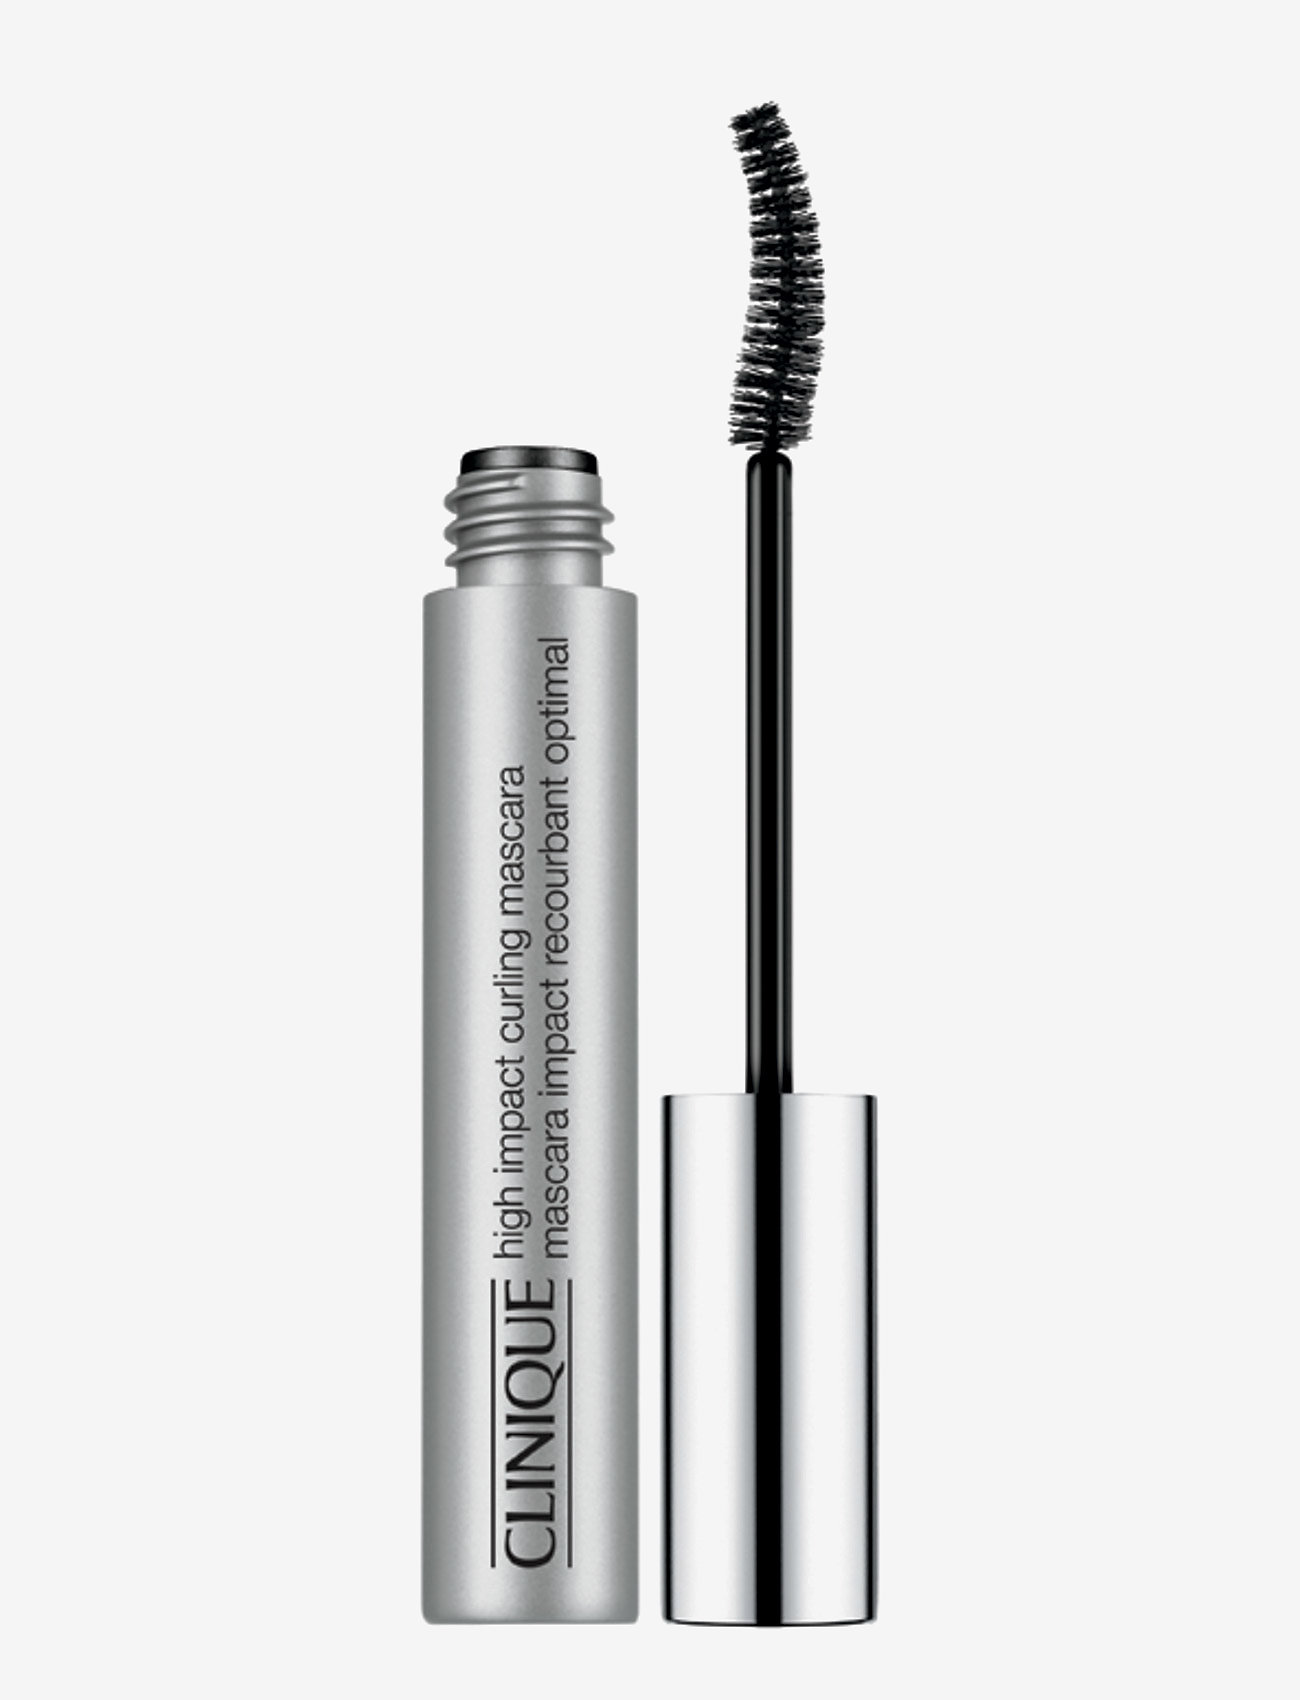 Clinique - High Impact Curling Mascara, Black - mascara - black - 0